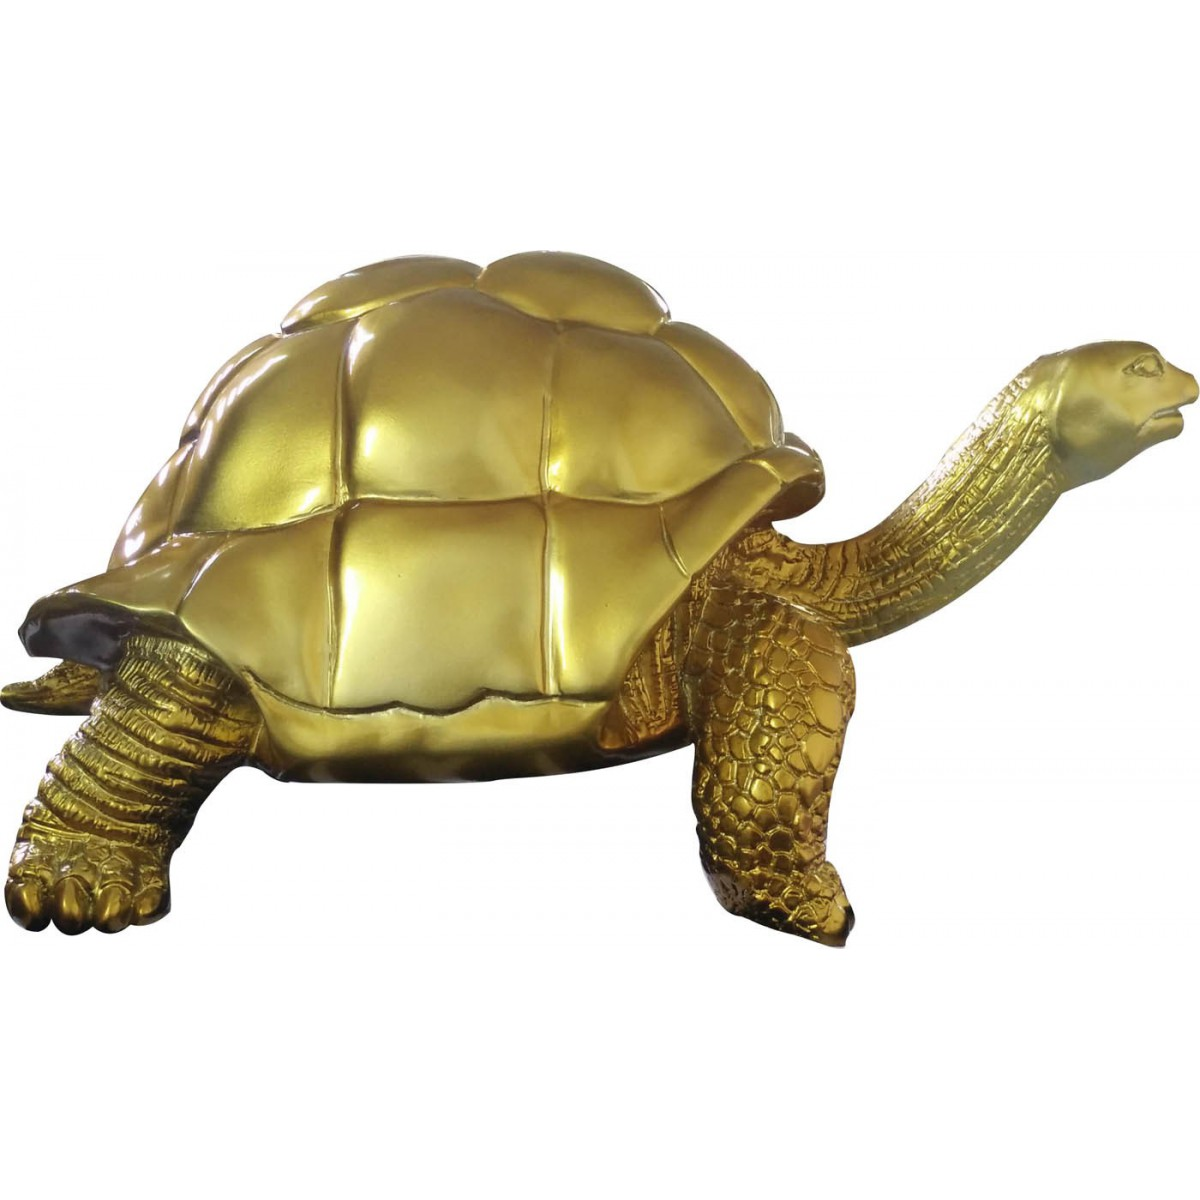 Objet tortue en decoration solutions pour la d coration for Objet de decoration